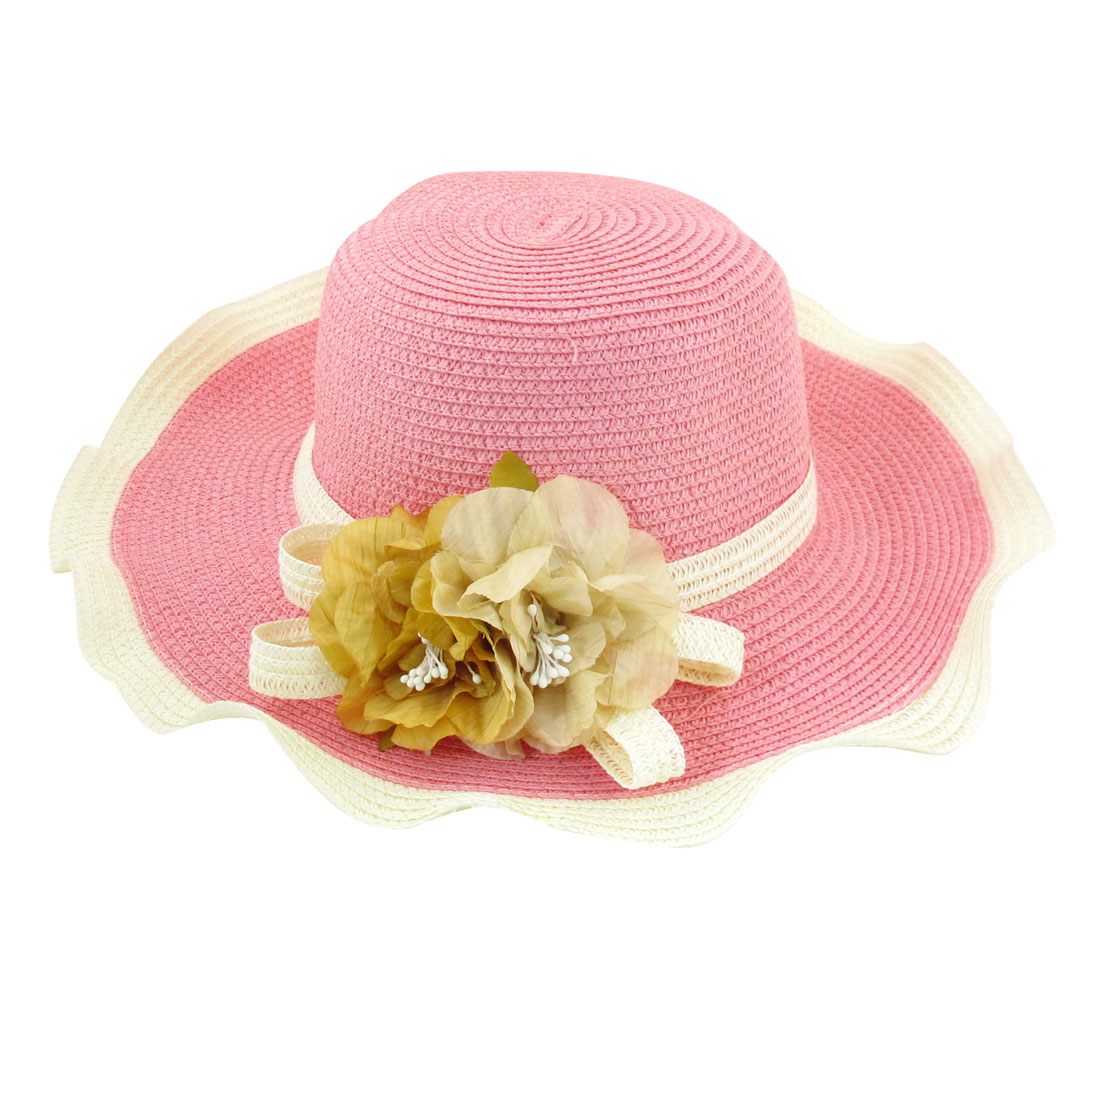 Ladies Braided Strap Decoration Straw Beach Sun Cap Hat Pink